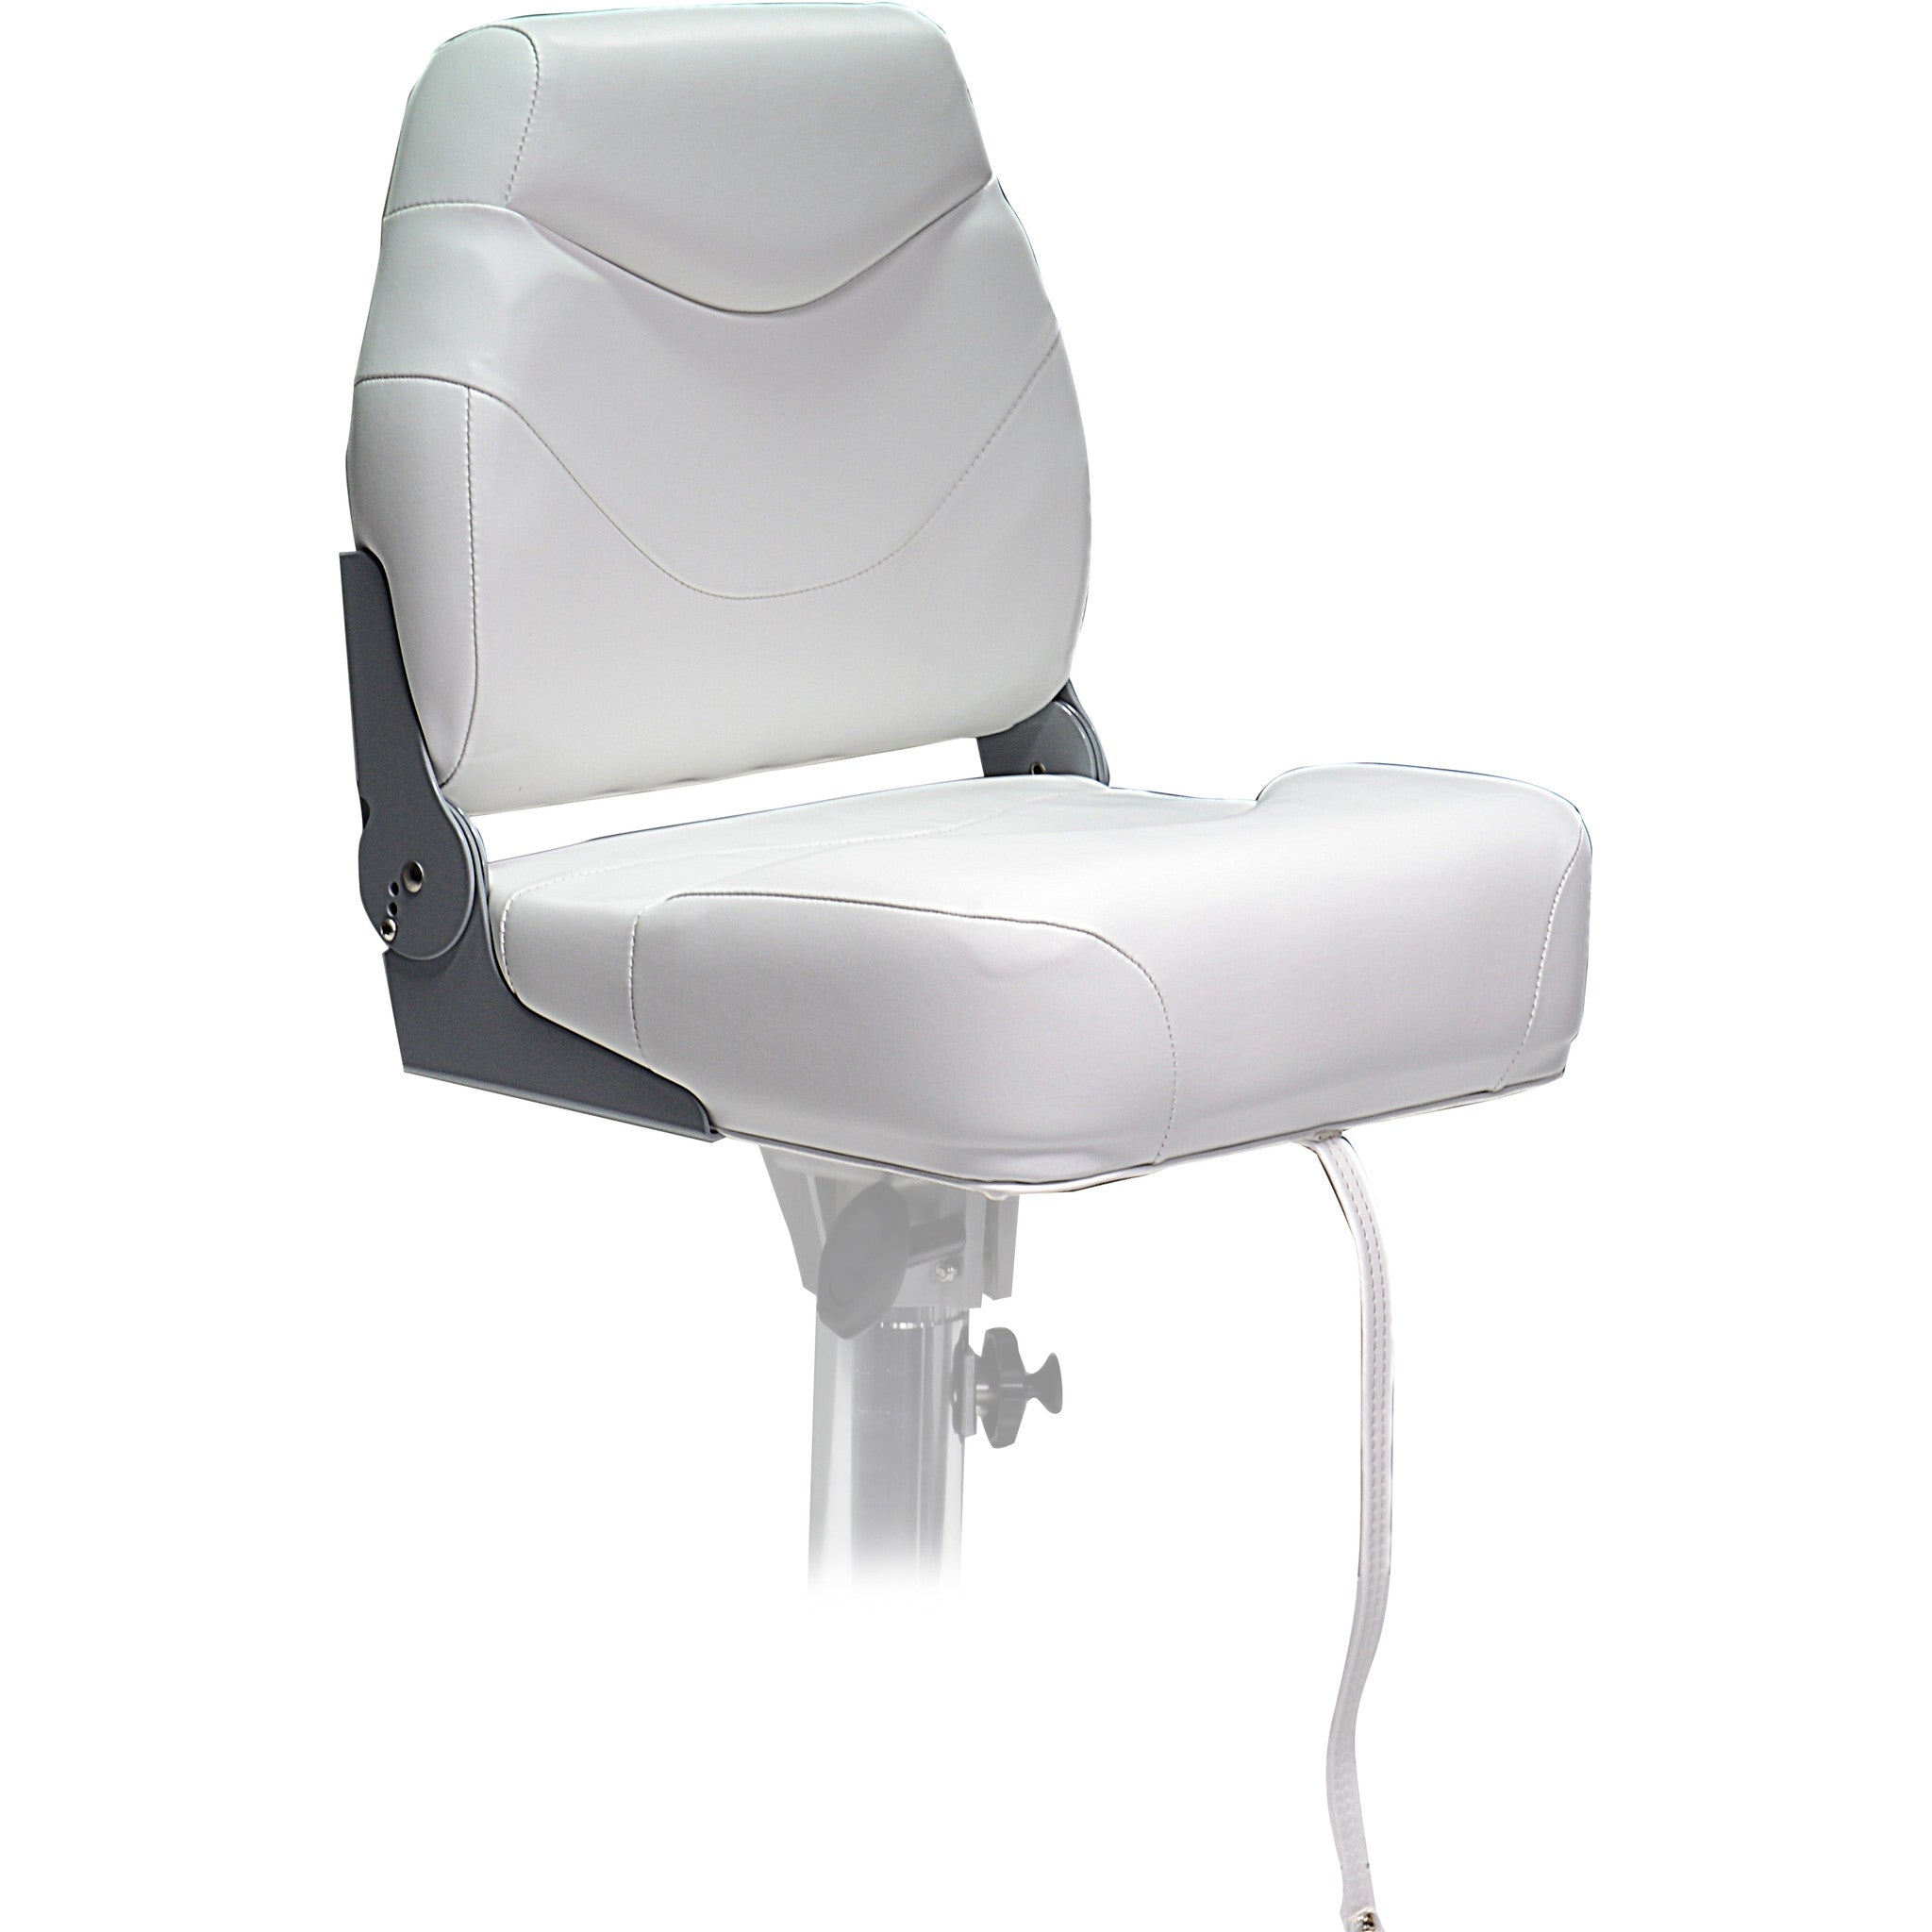 com img inspirational boat pedestal double luxury of seat mounts from